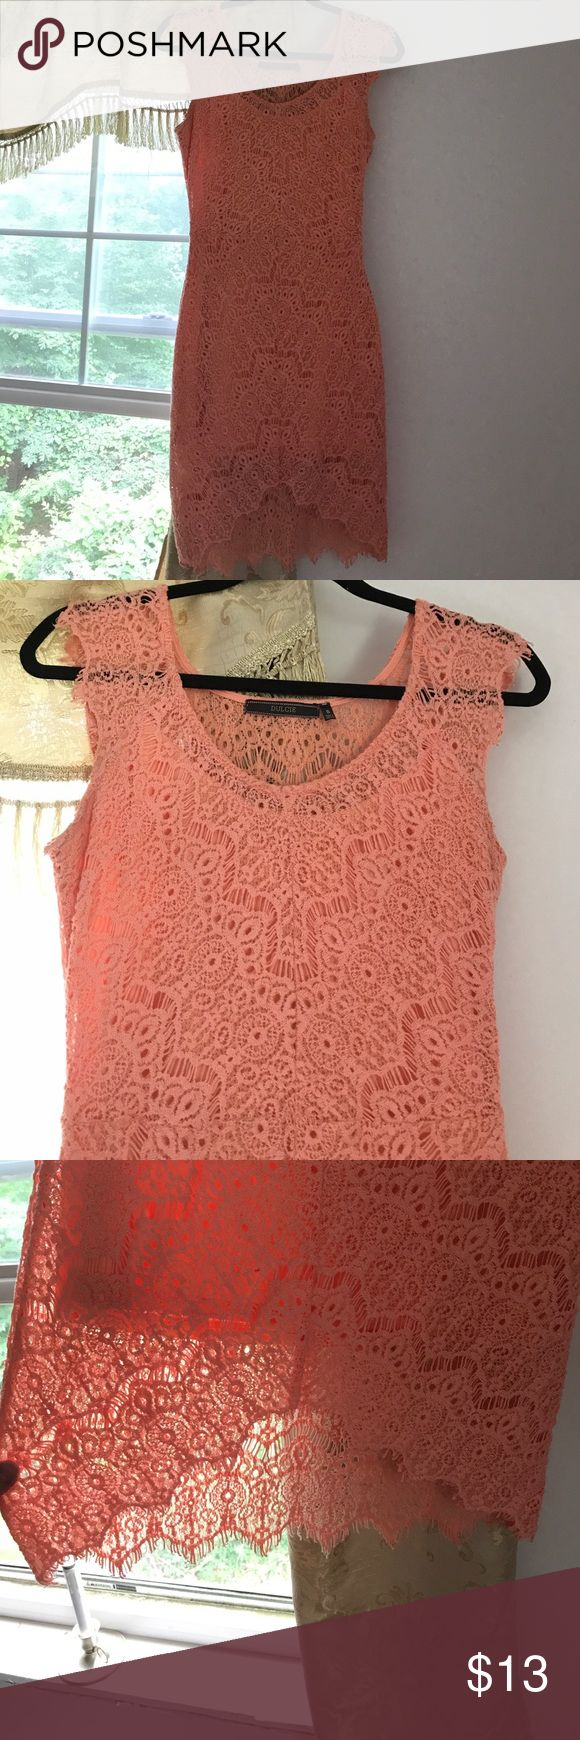 Coral Lace Dress Worn a couple times. A little too big for me. Comfy stretch lining. Could be dressed up or down. Dresses Midi